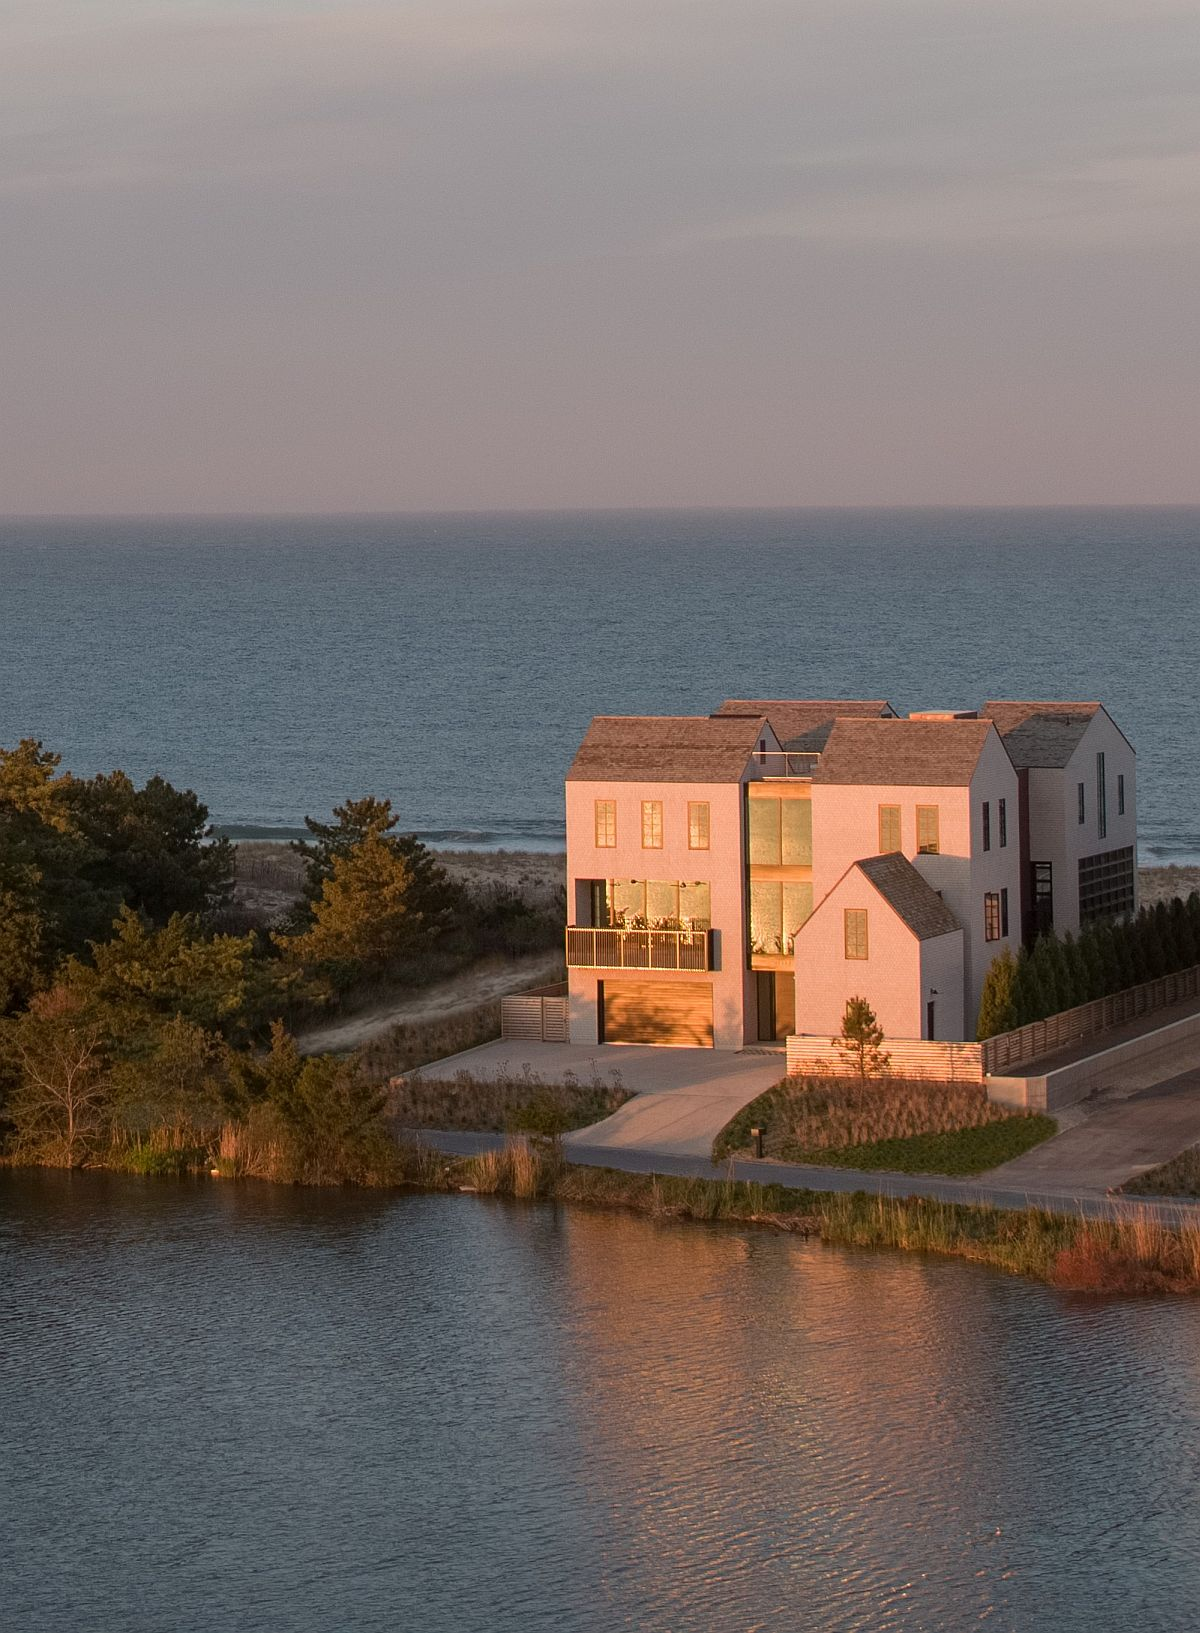 Strip of land between sea and the lake holds the multi-level vacation home in Delware